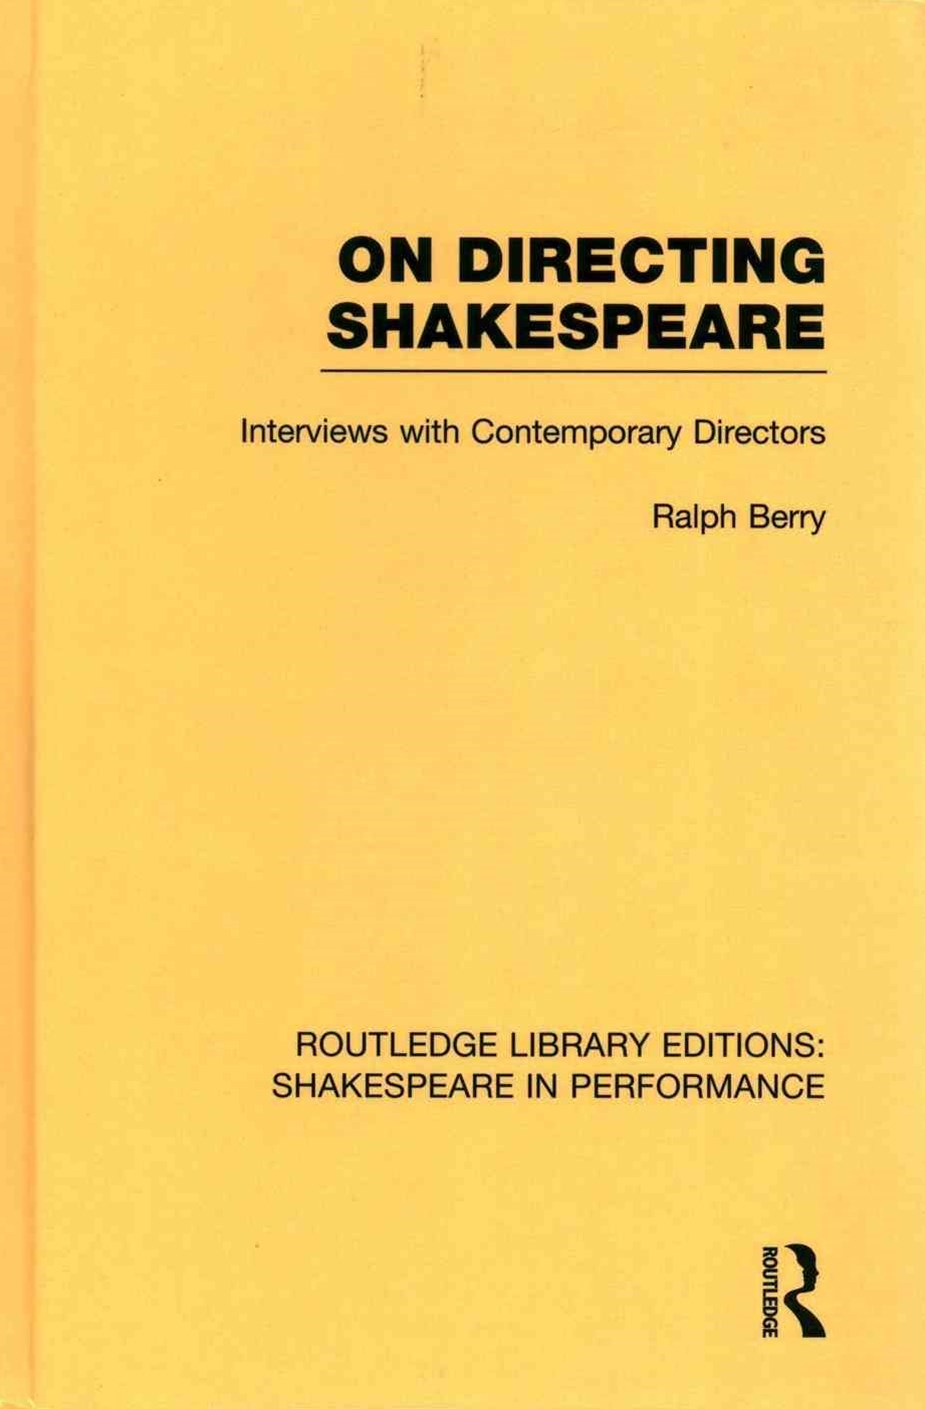 Routledge Library Editions: Shakespeare in Performance